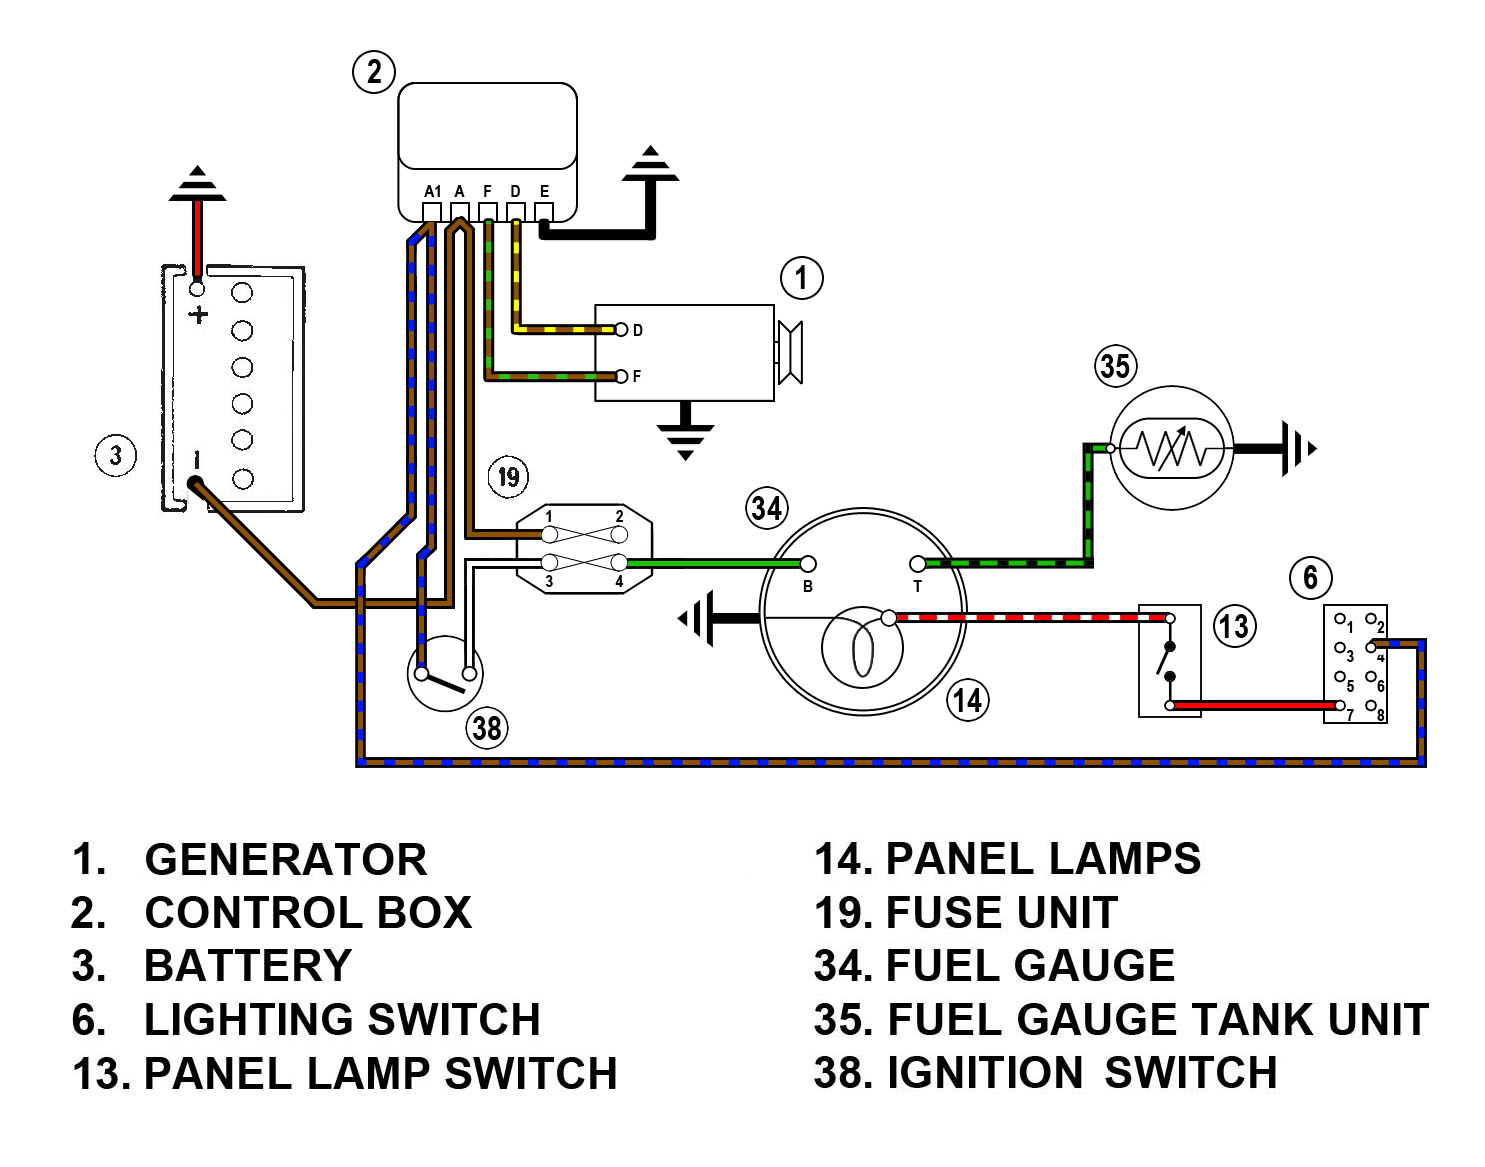 Honeywell T651a3018 Wiring Diagram Download Collection Diagrams Luxury Equus Fuel Gauge